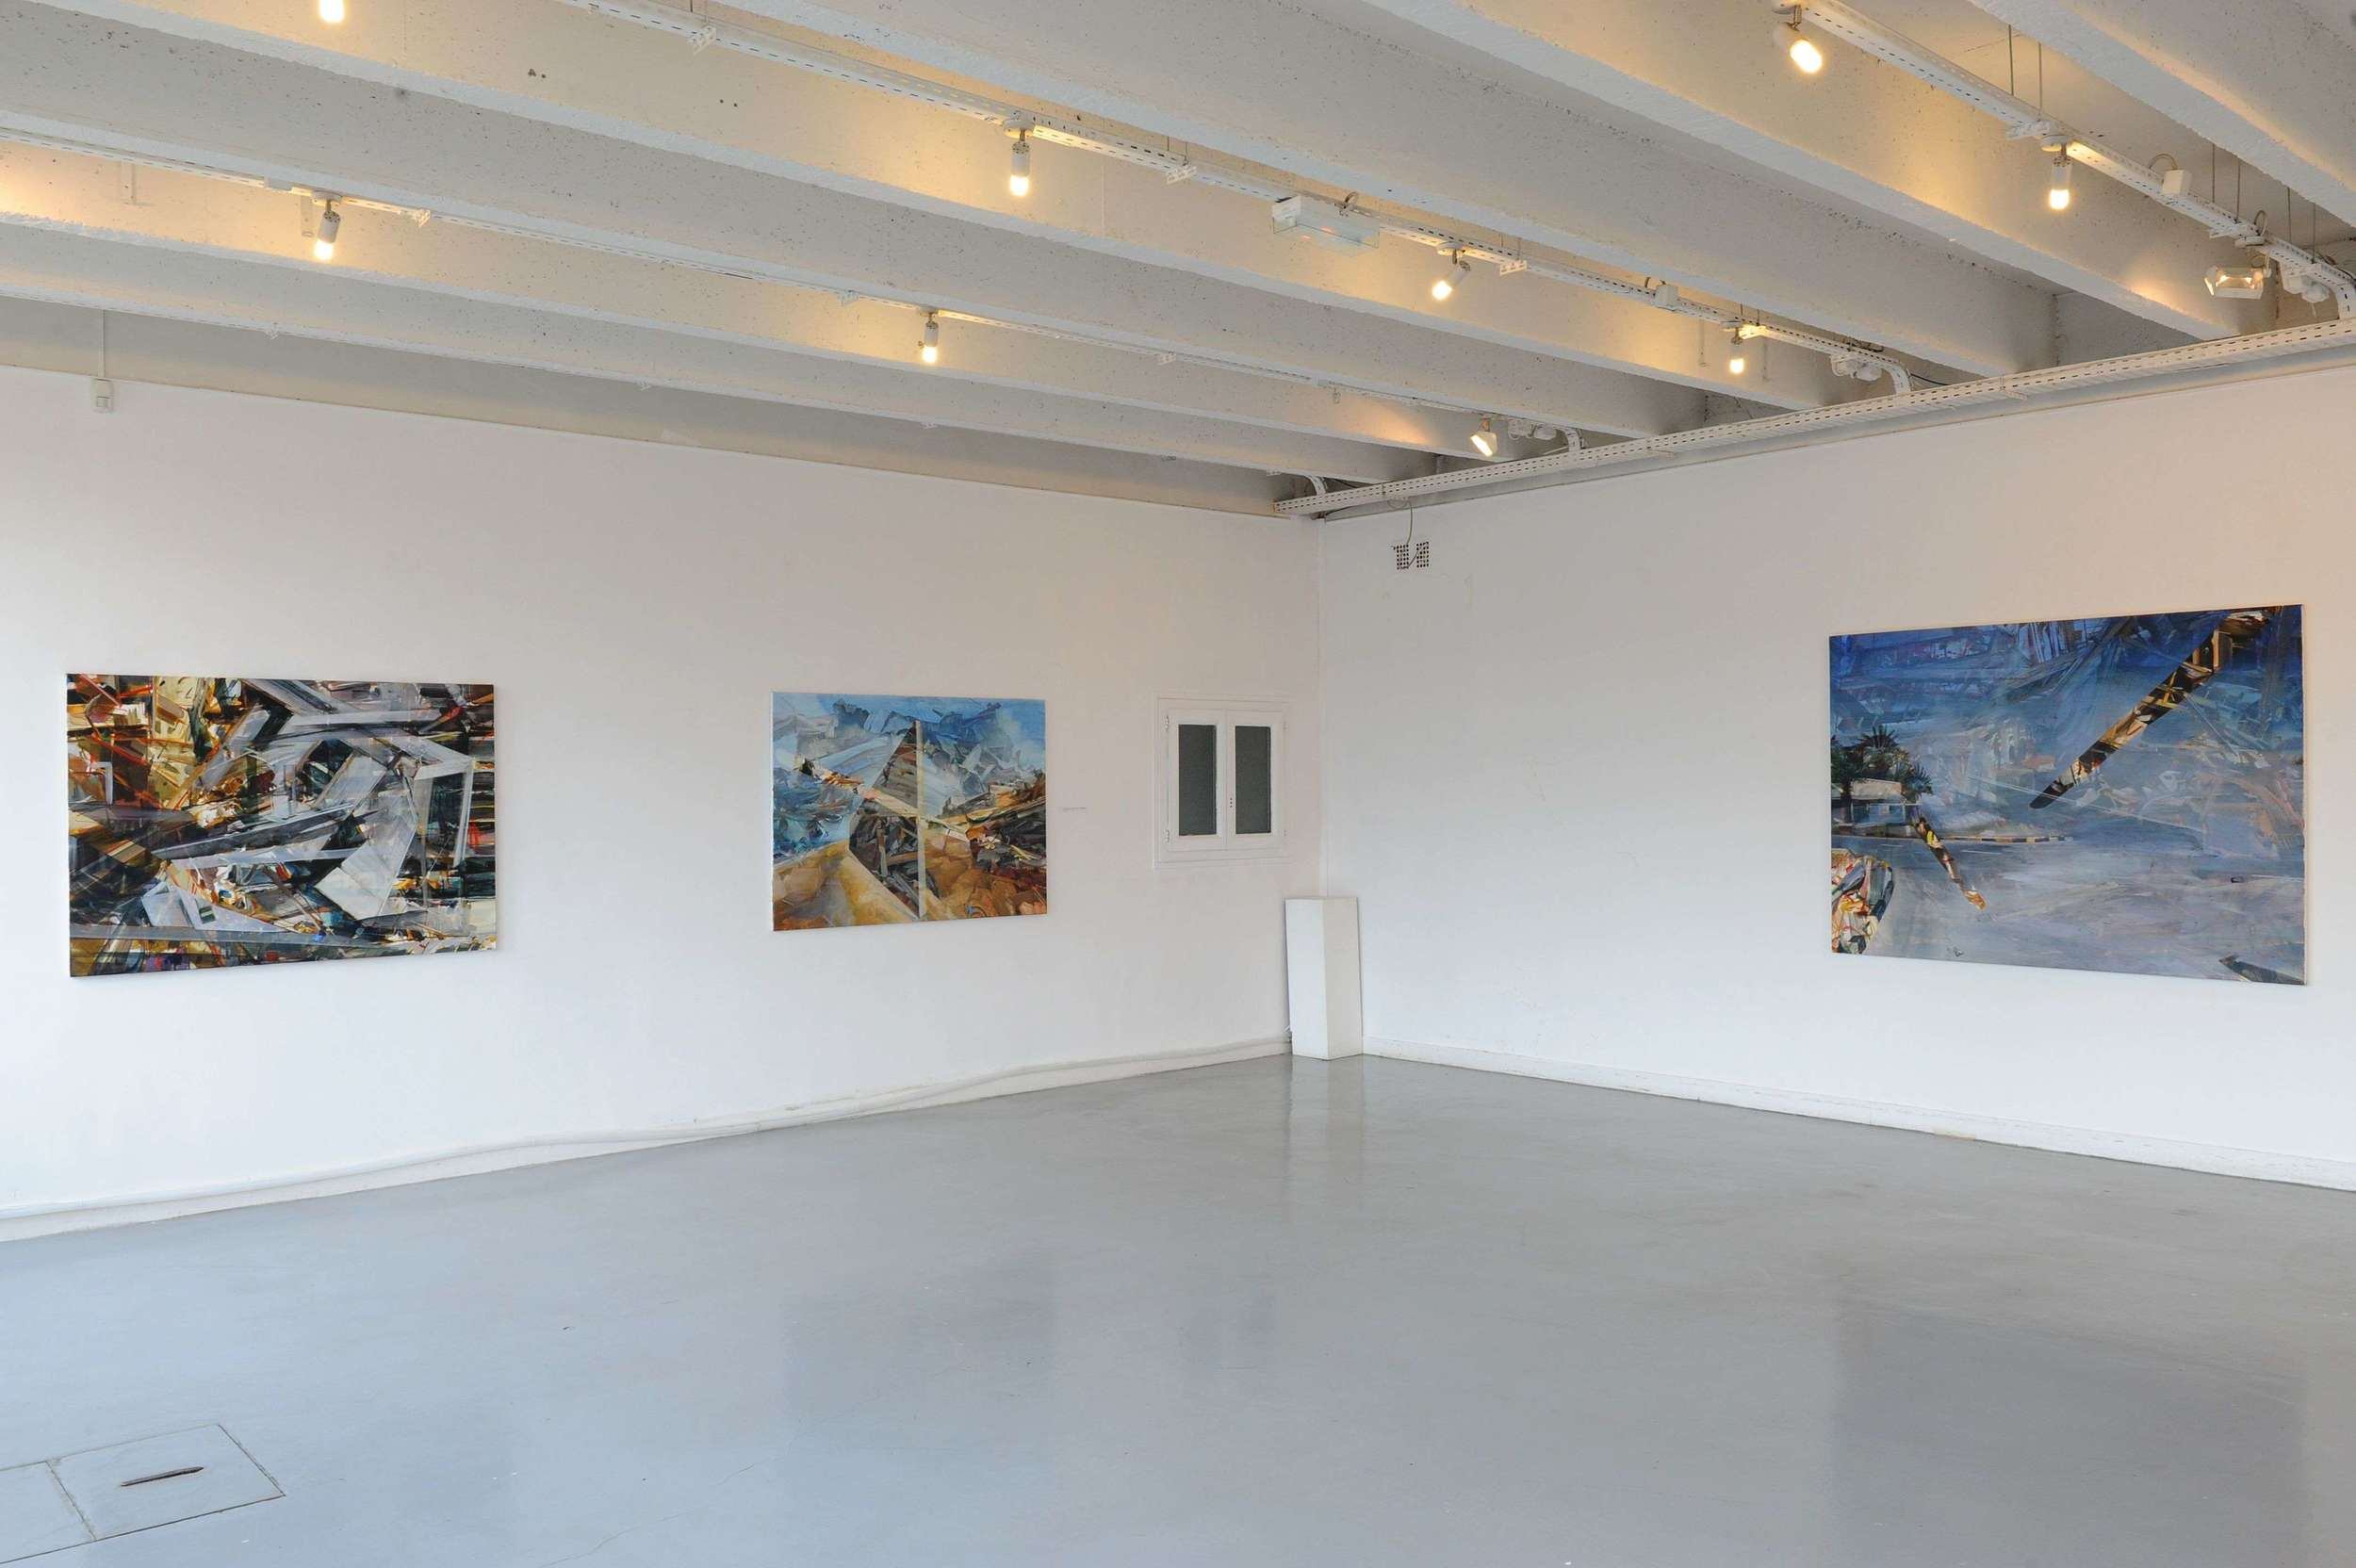 Shake Break Bounce , Julio Gonzales Gallery, and Maison Marin Beaux-Arts, Arcueil (FR) 2012